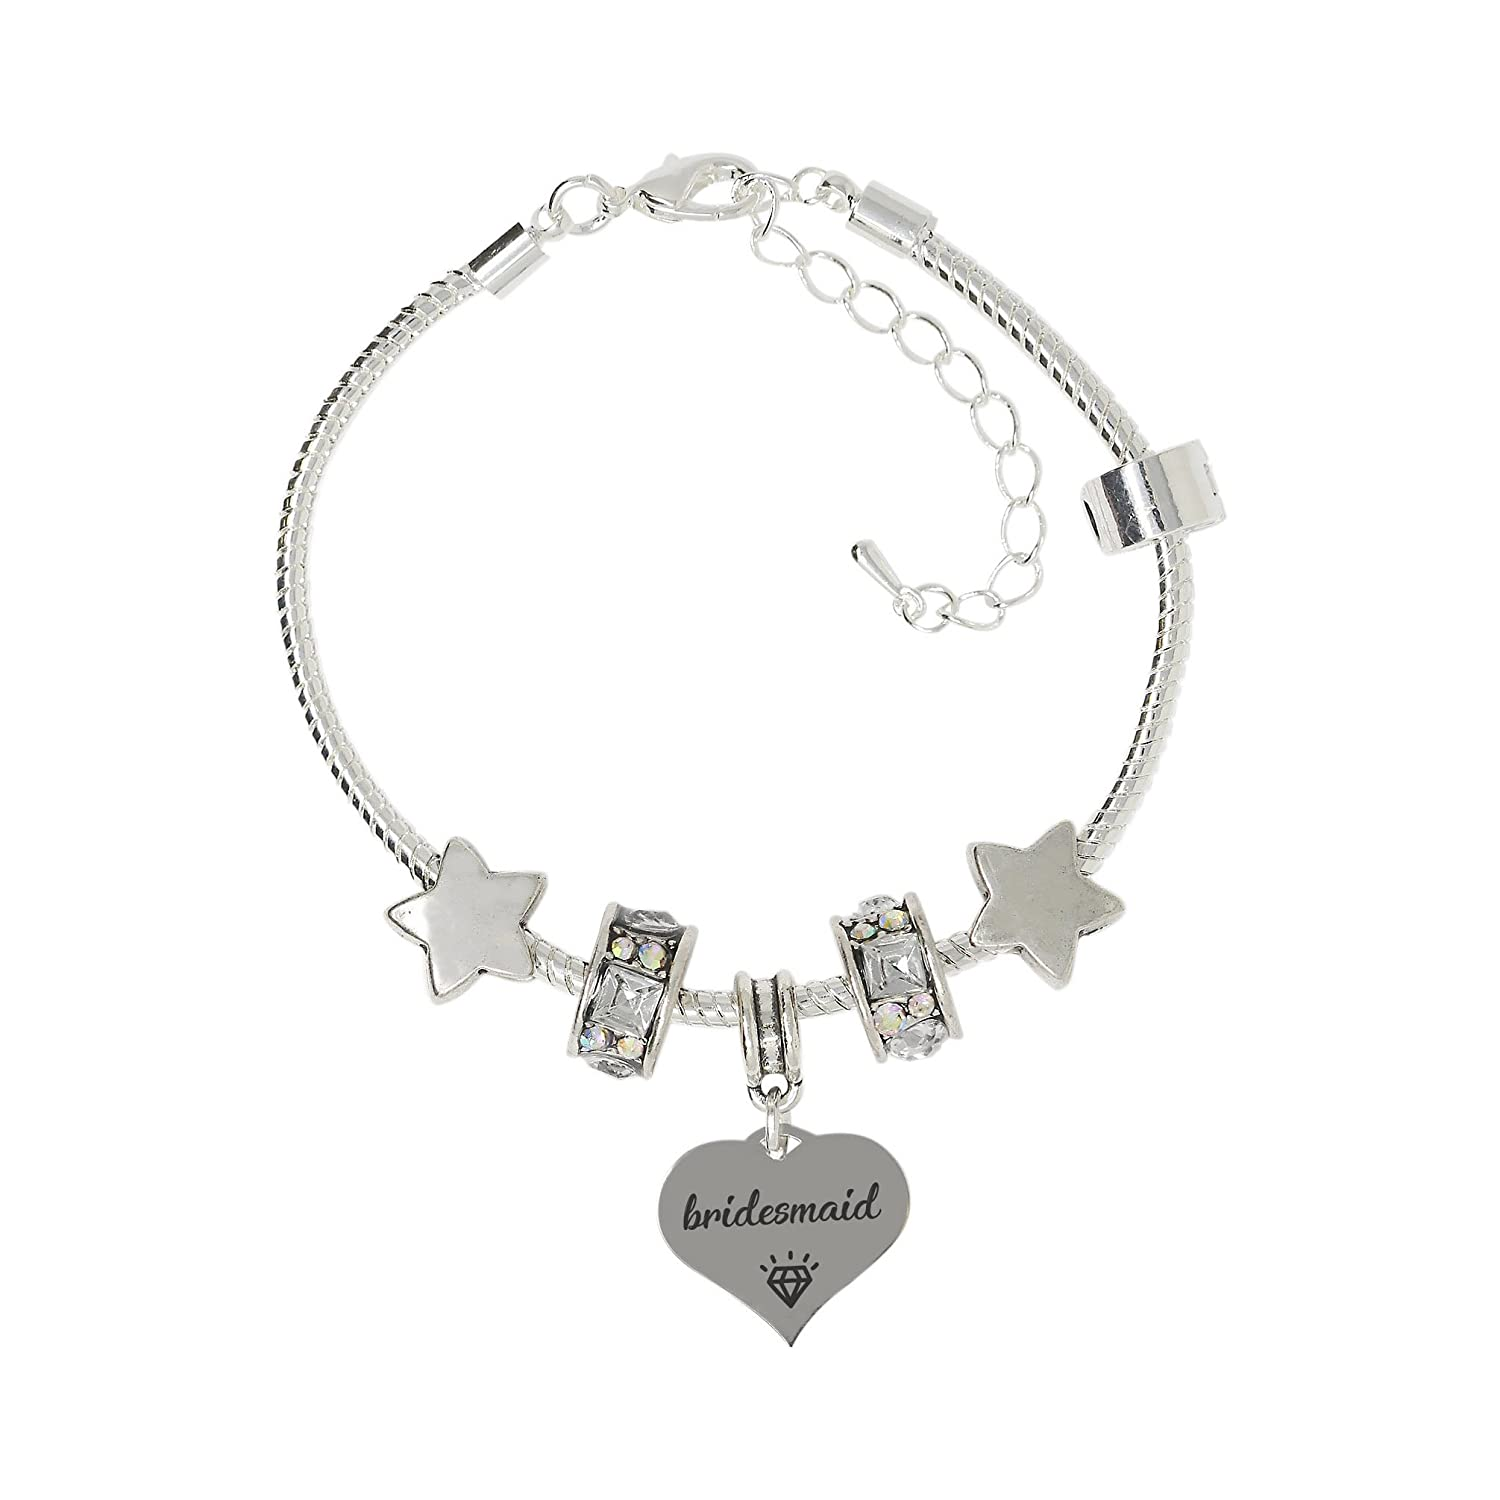 3f23681c4 Amazon.com: Truly Charming Thank You for Being My Bridesmaid Silver Plated  Adjustable Charm Bracelet in A Special Themed Gift Box: Jewelry